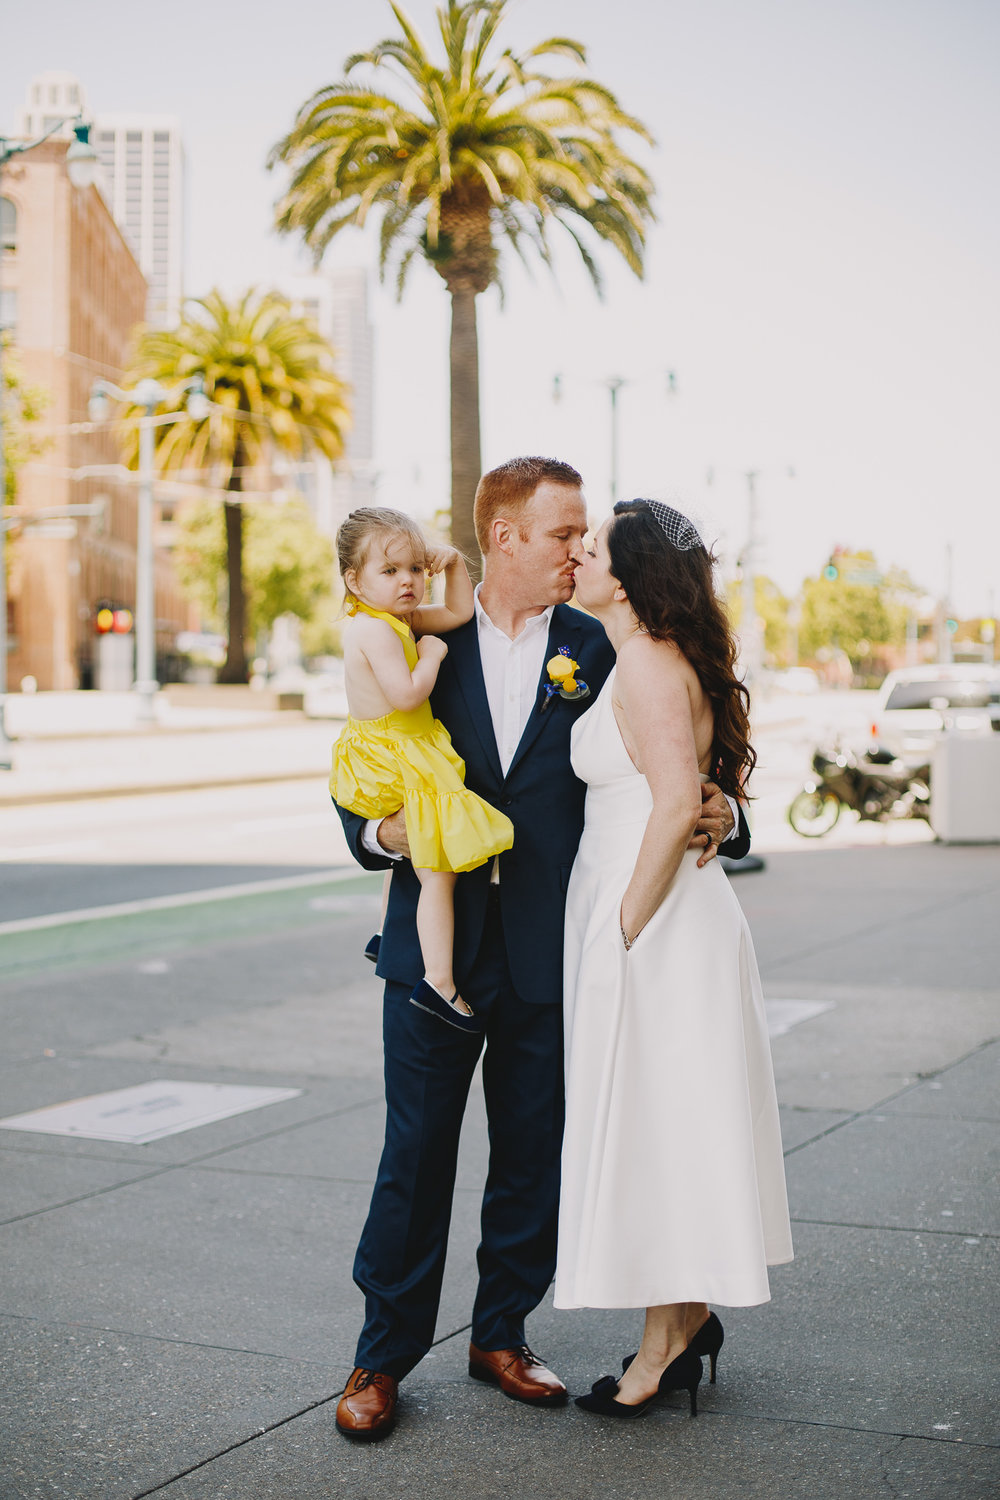 Archer Inspired Photography SF City Hall Elopement Wedding Lifestyle Documentary Affordable Photographer-280.jpg